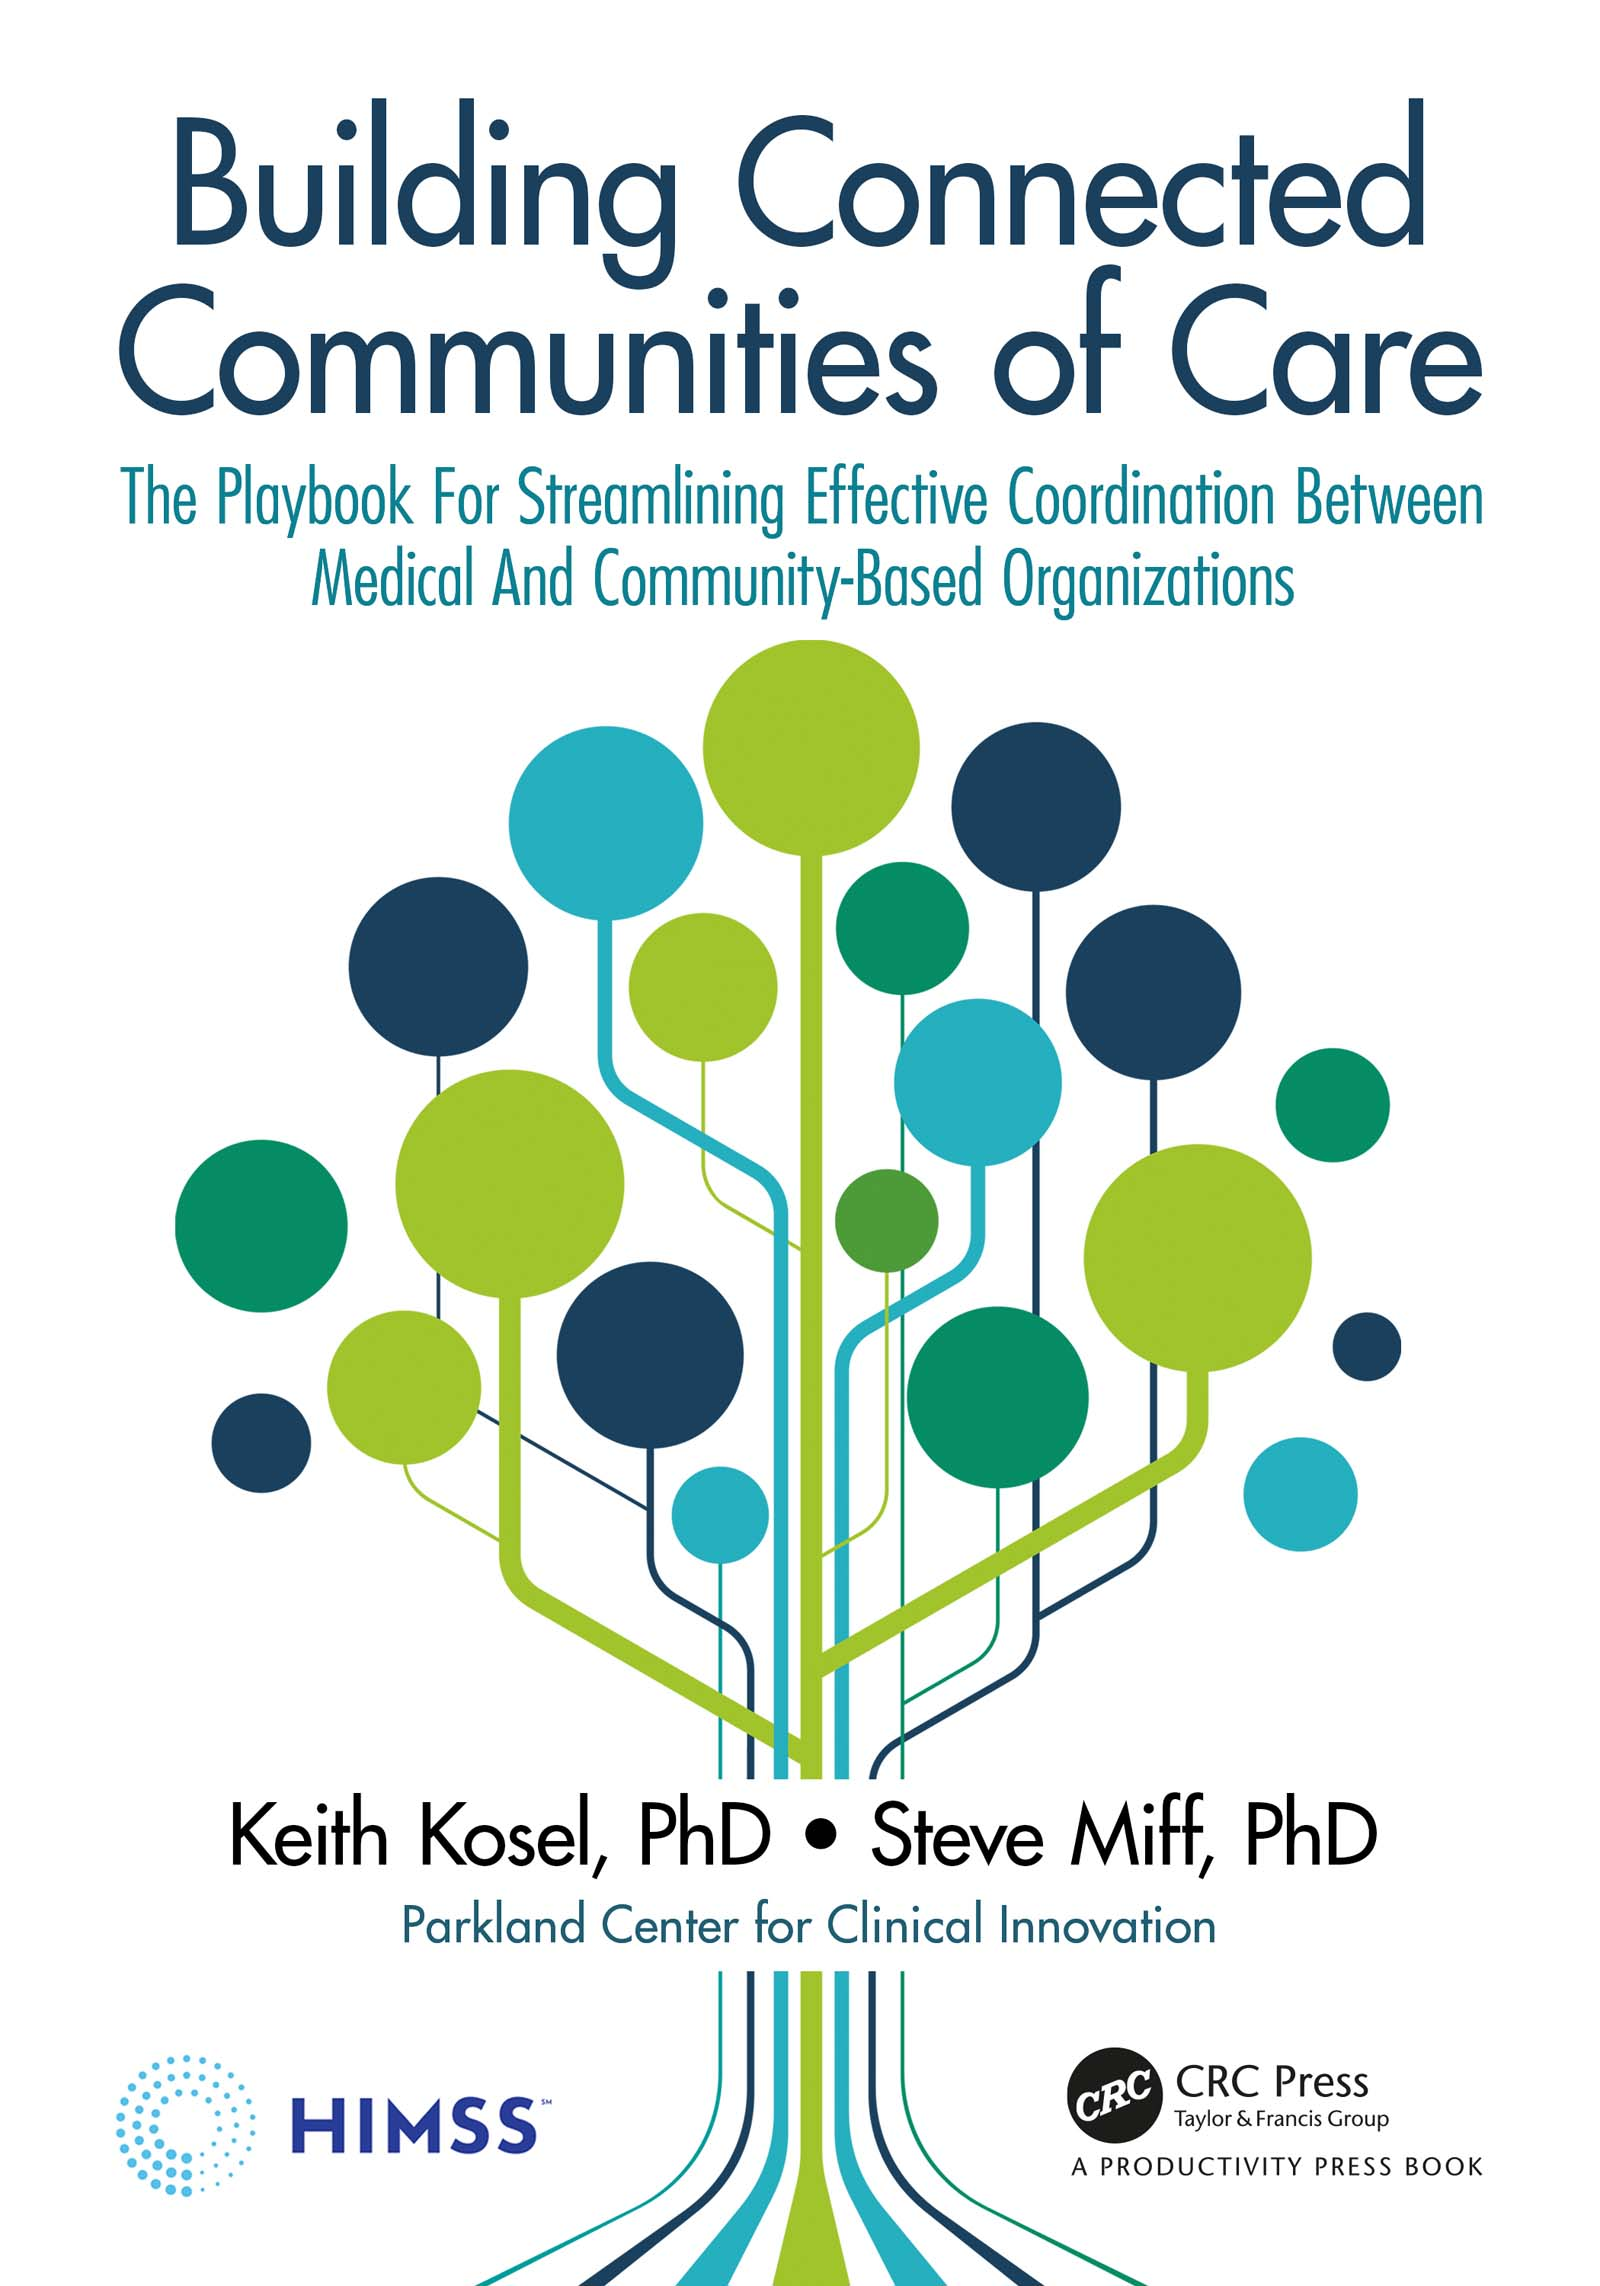 Building Connected Communities of Care